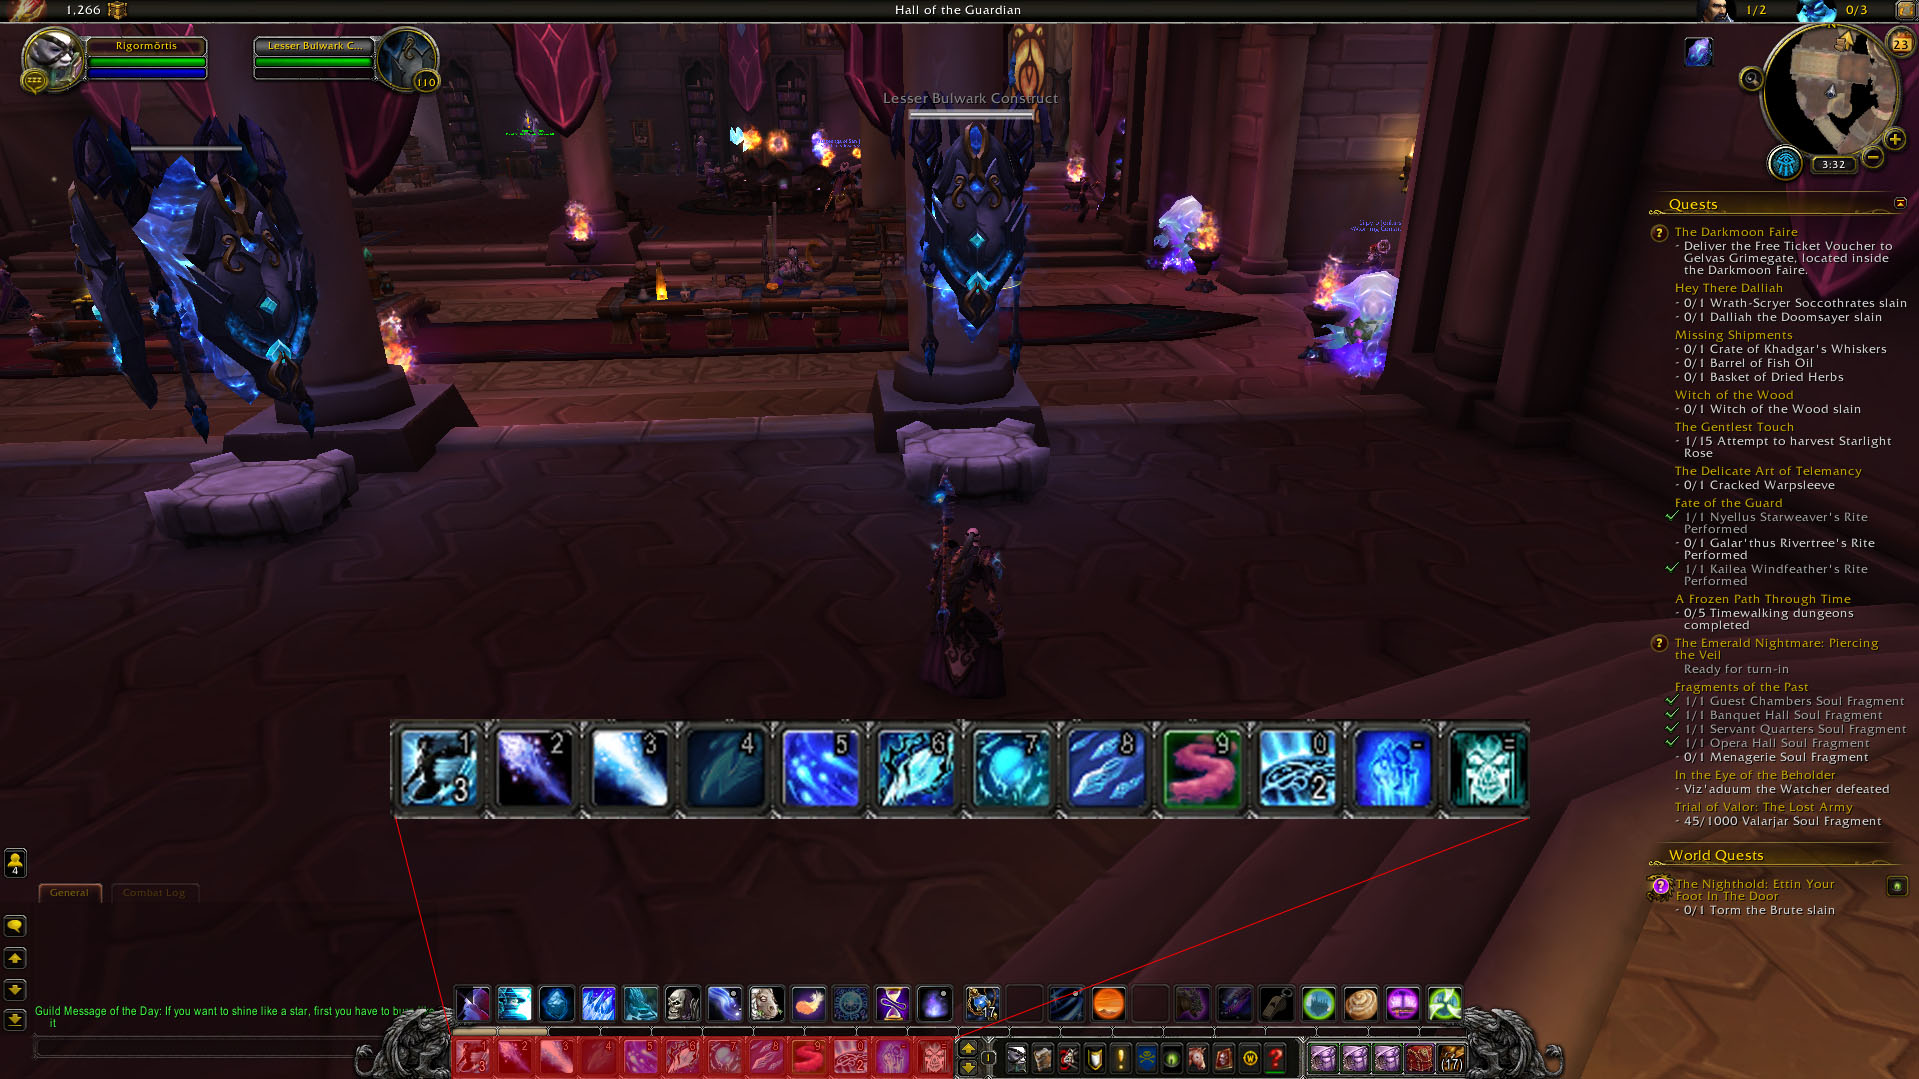 In WoW, the action bar is mapped to keys '1' through '=' on a standard keyboard.